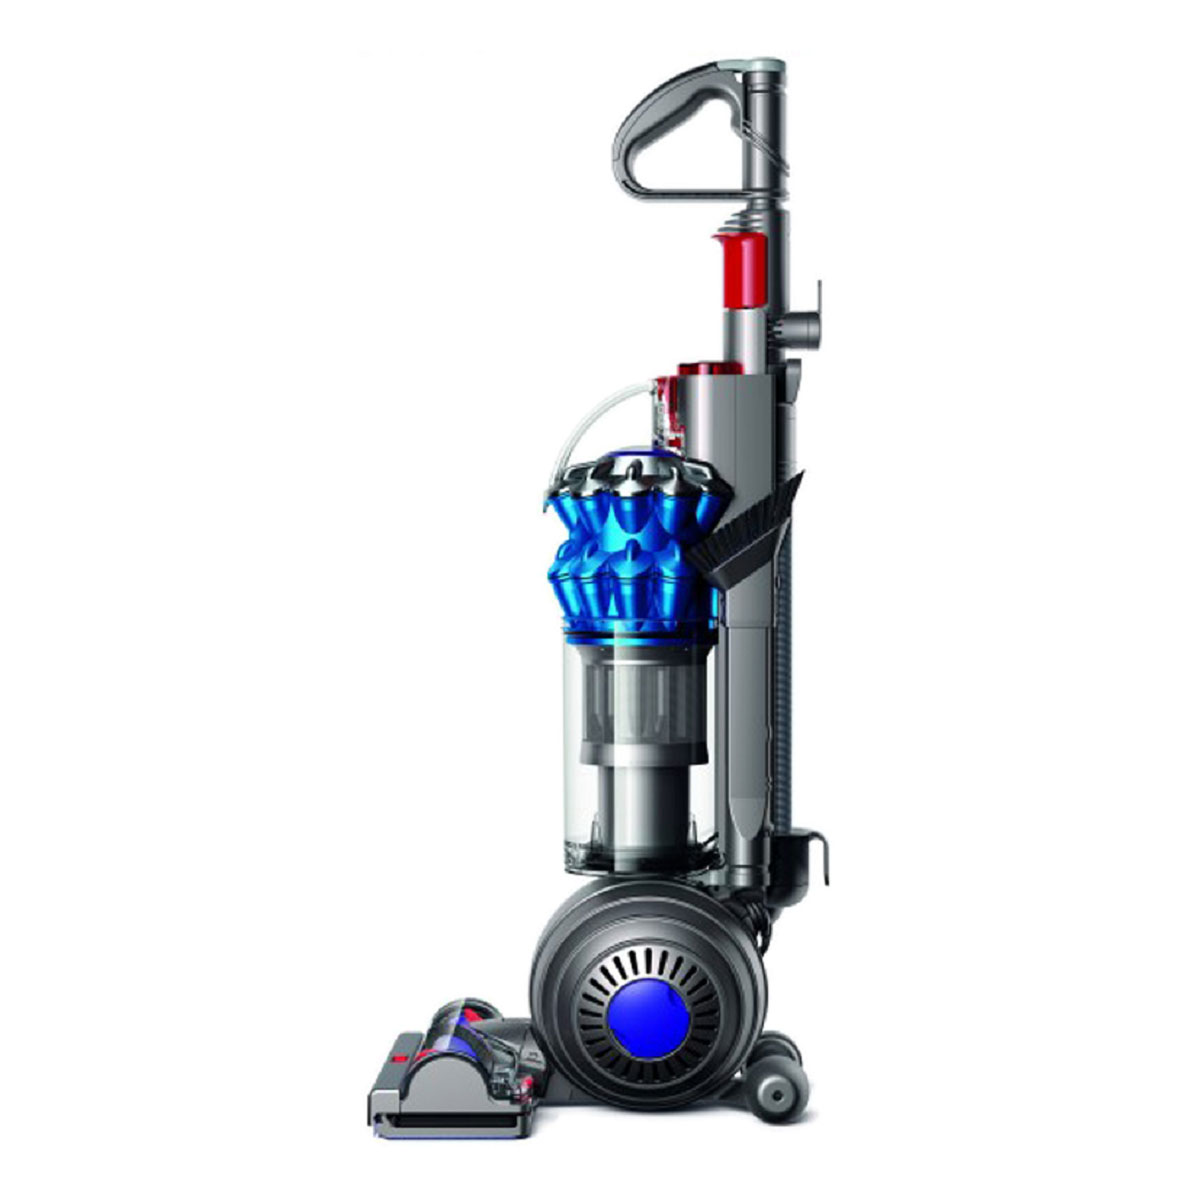 Dyson 213552-01 Small Ball Allergy Compact Upright Vacuum Cleaner